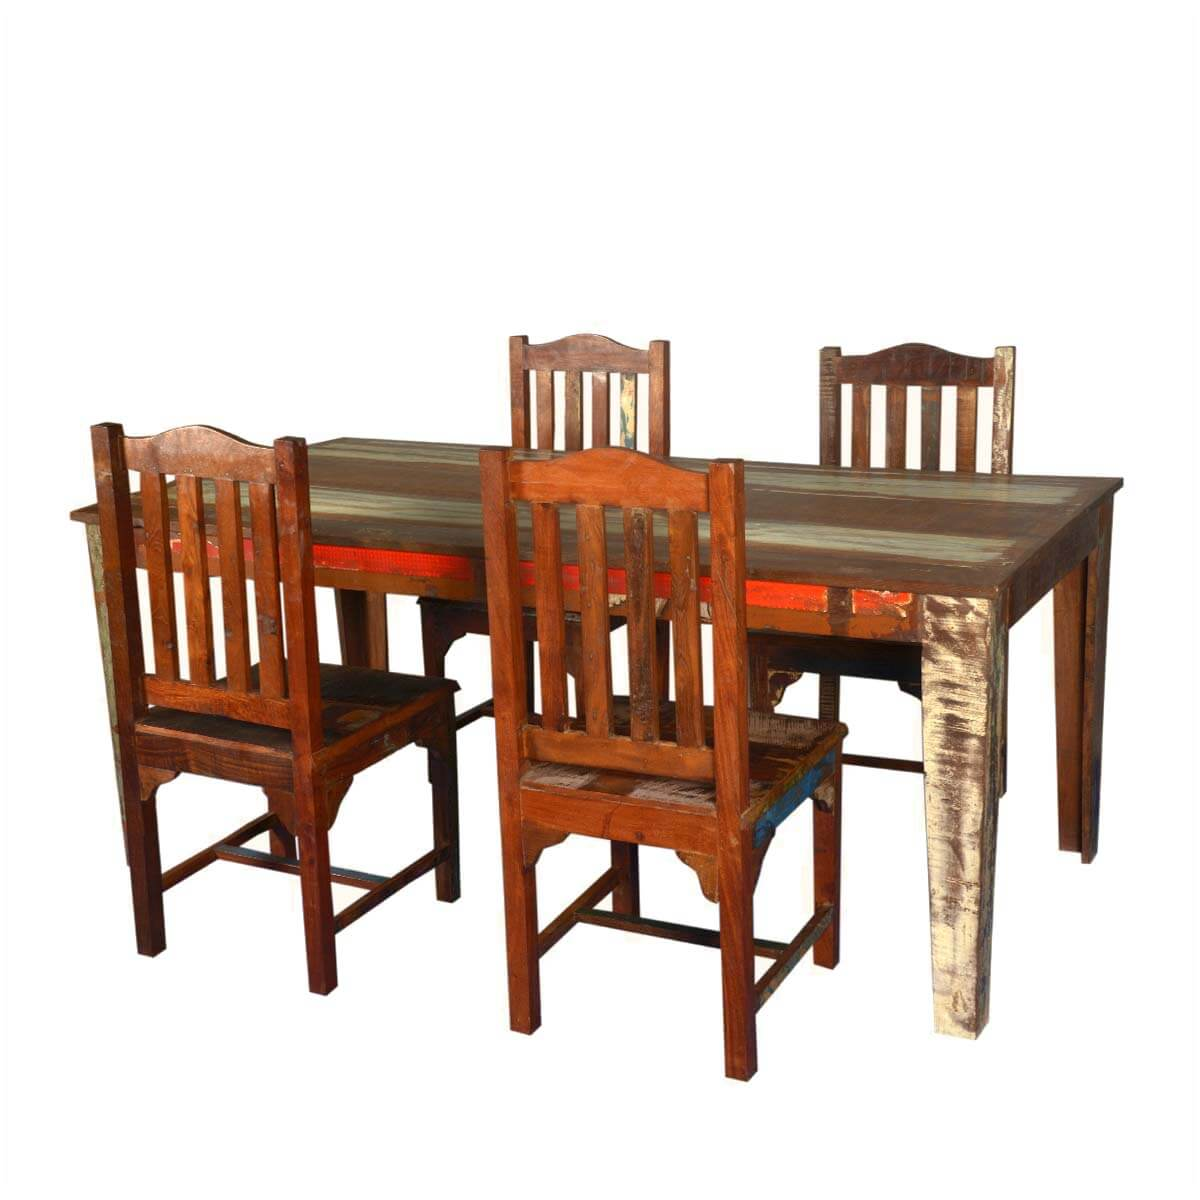 Reclaimed Wood Dining Chairs ~ Reclaimed wood dining table with mission chairs